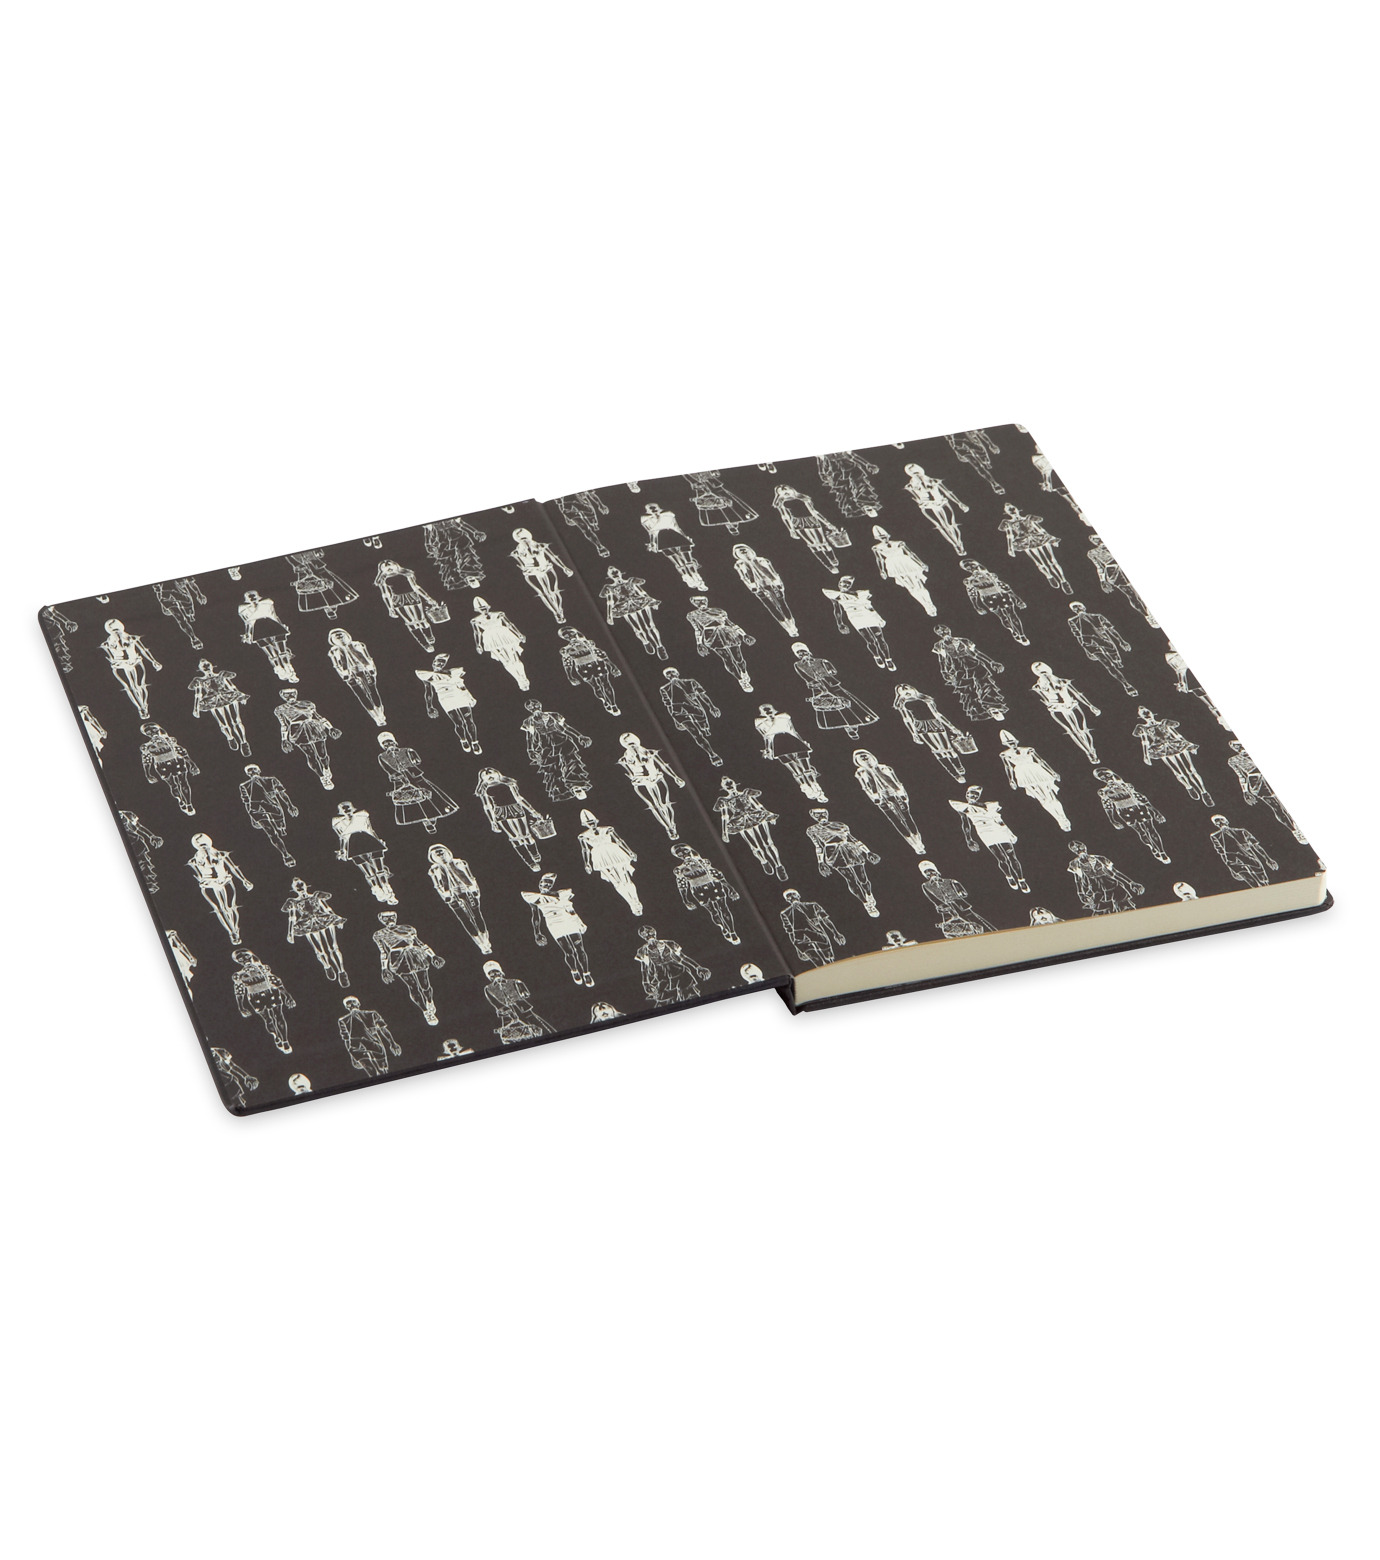 Fashematical(ファシェマティカル)のNote book-NONE(OTHER-GOODS/OTHER-GOODS)-Note-Lanvin 拡大詳細画像4